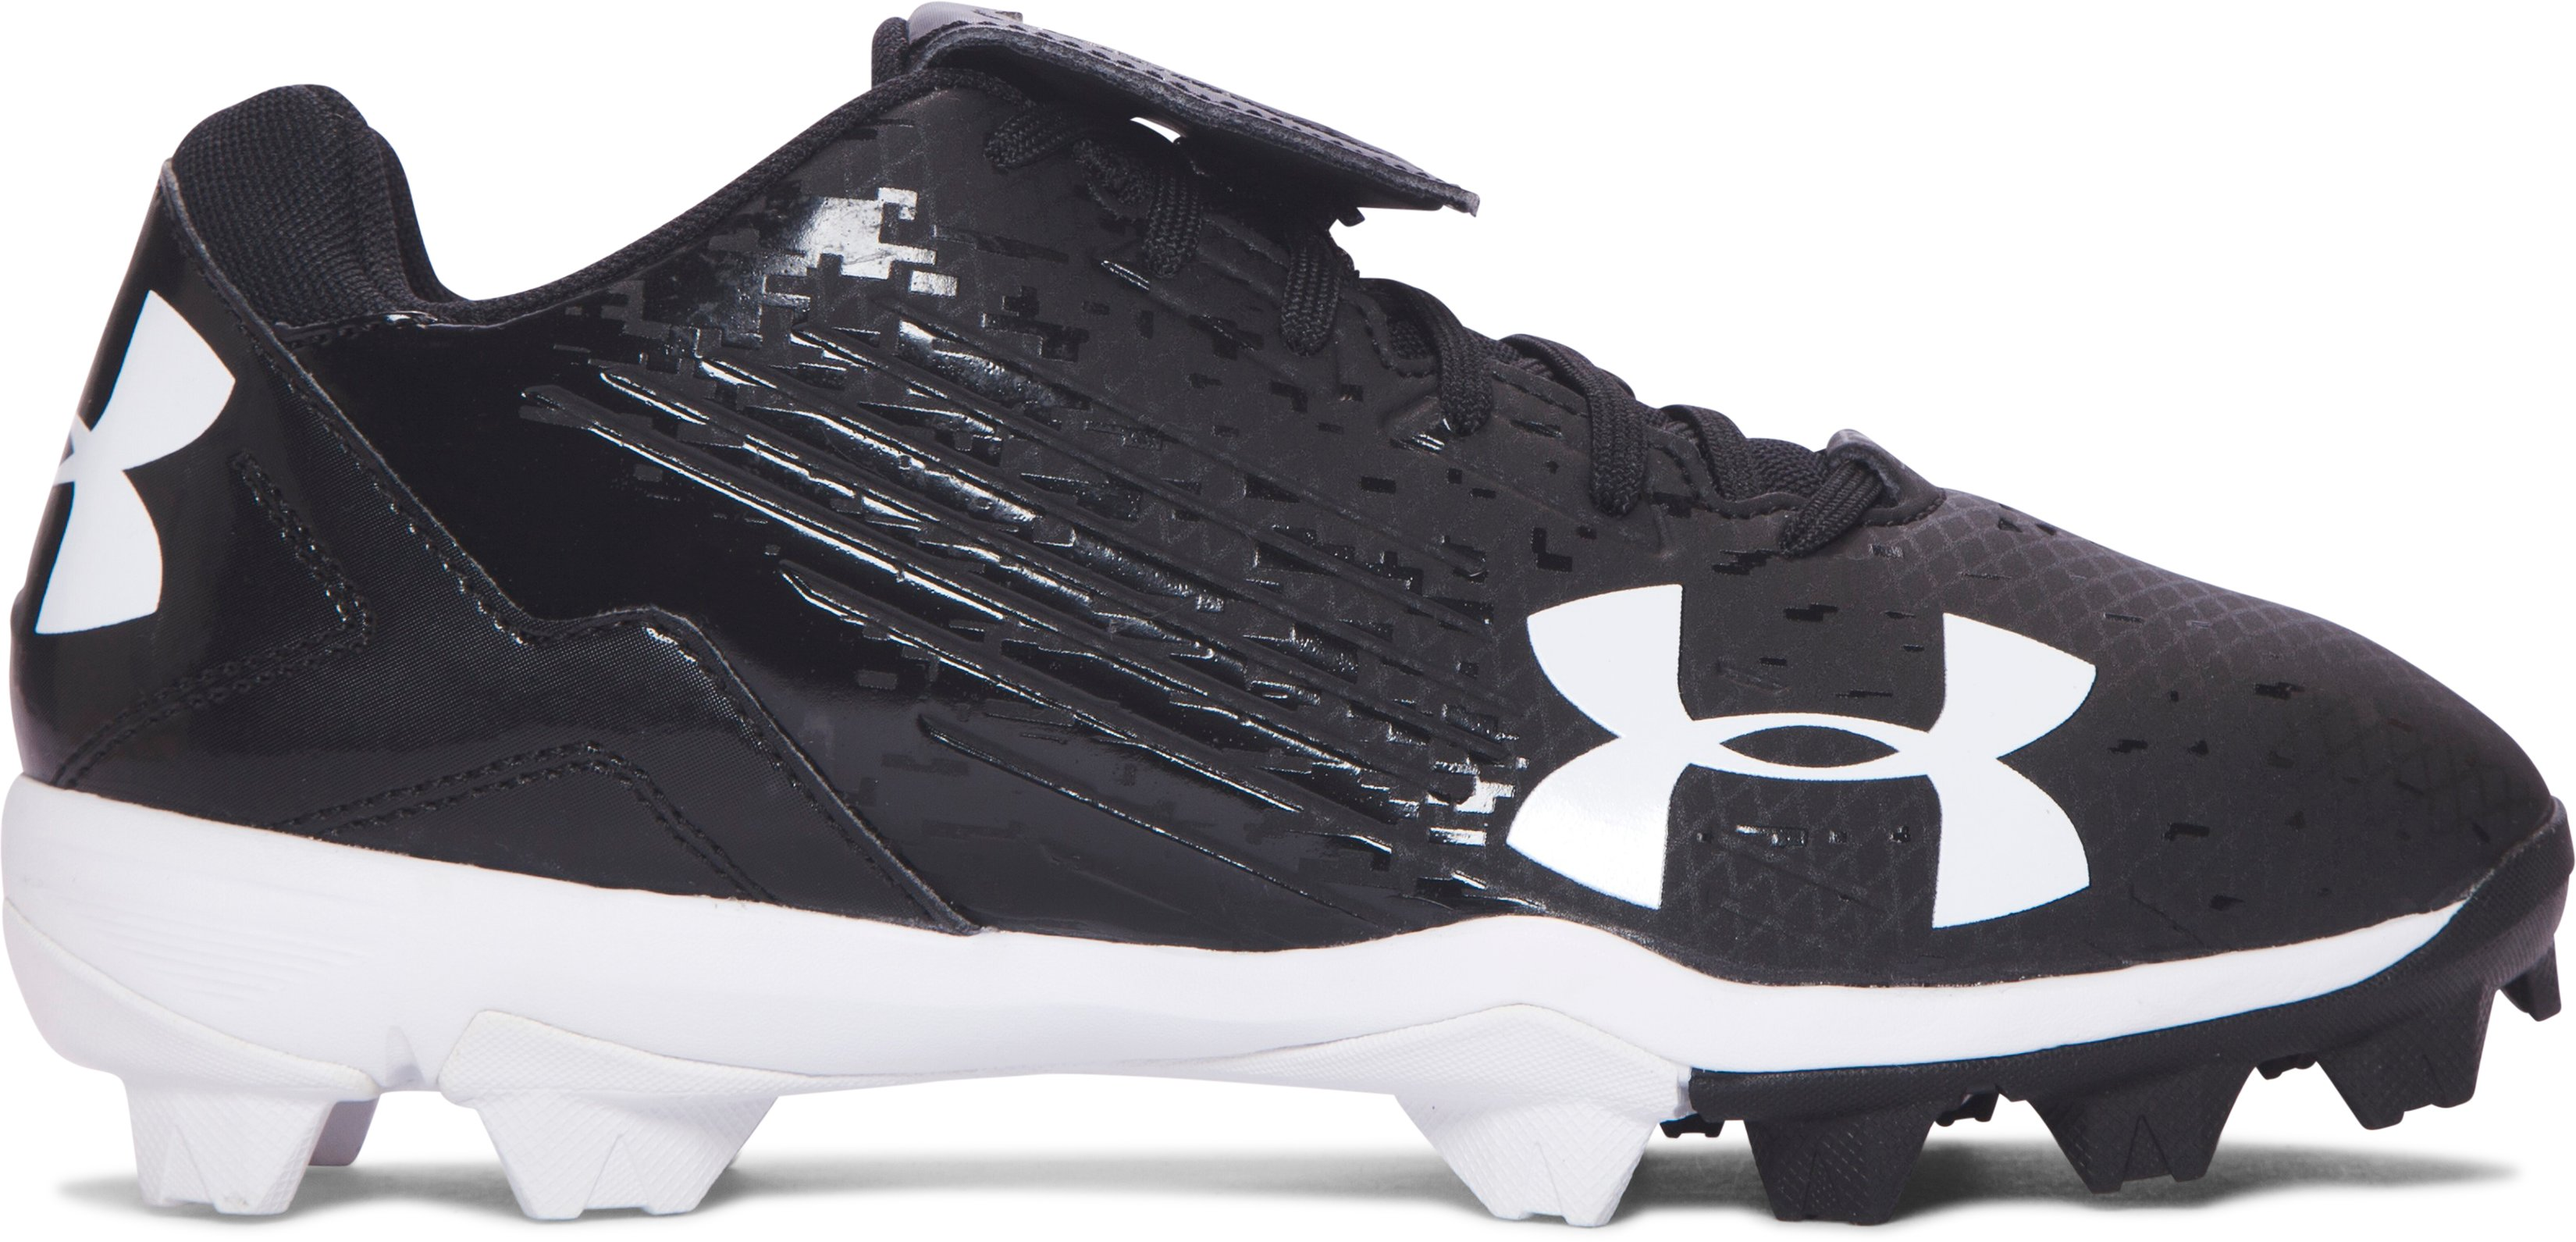 Boys' UA MLB Switch Low Jr. Baseball Cleats, Black , undefined